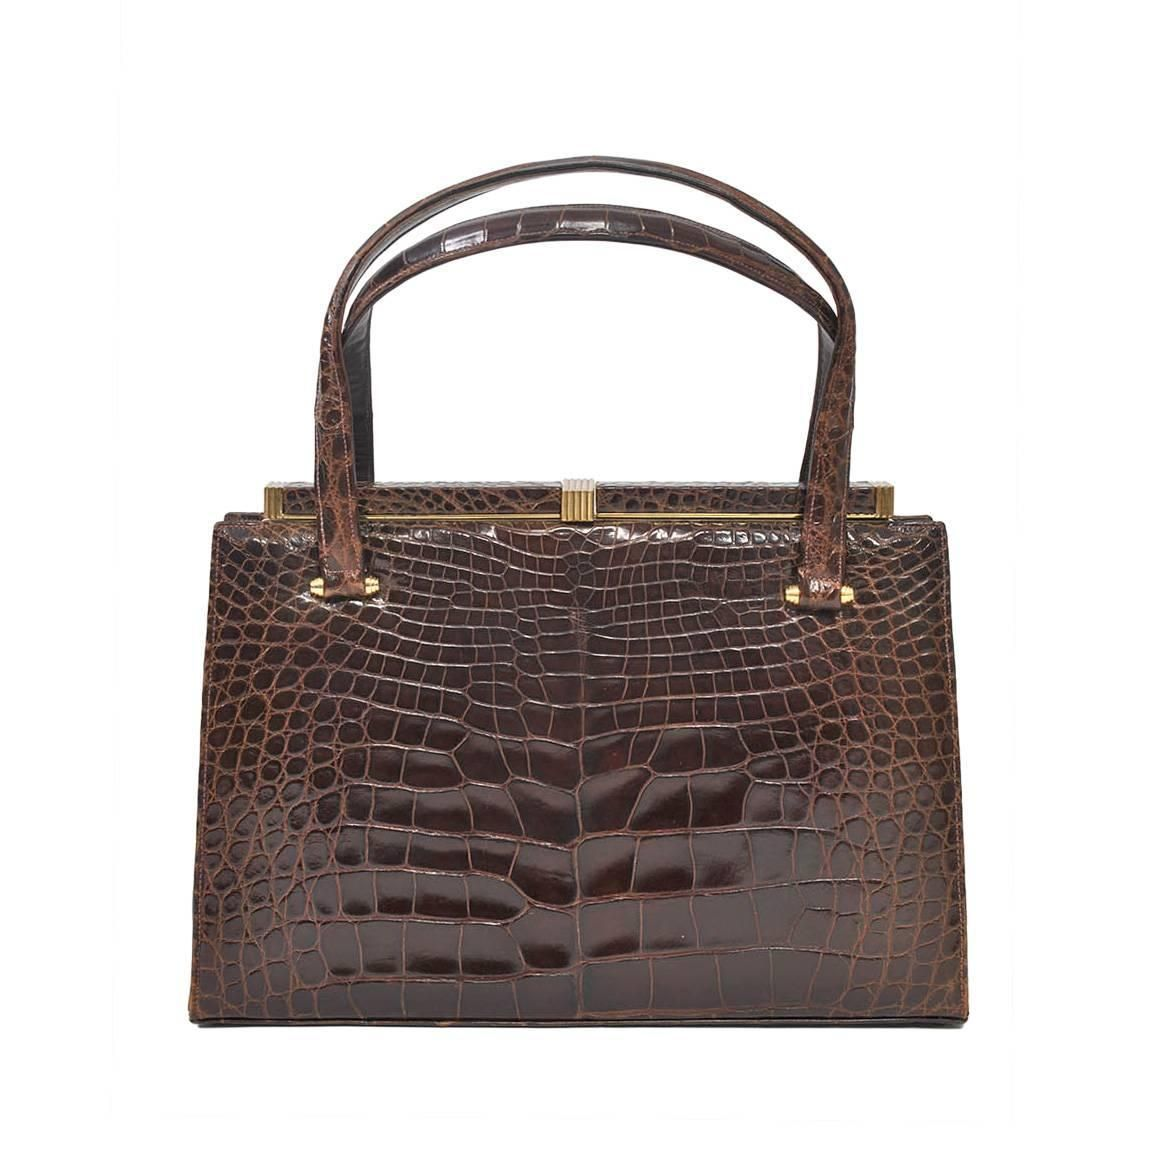 52256a633500 Pin by MRVCT on My True Love - Vintage Handbags